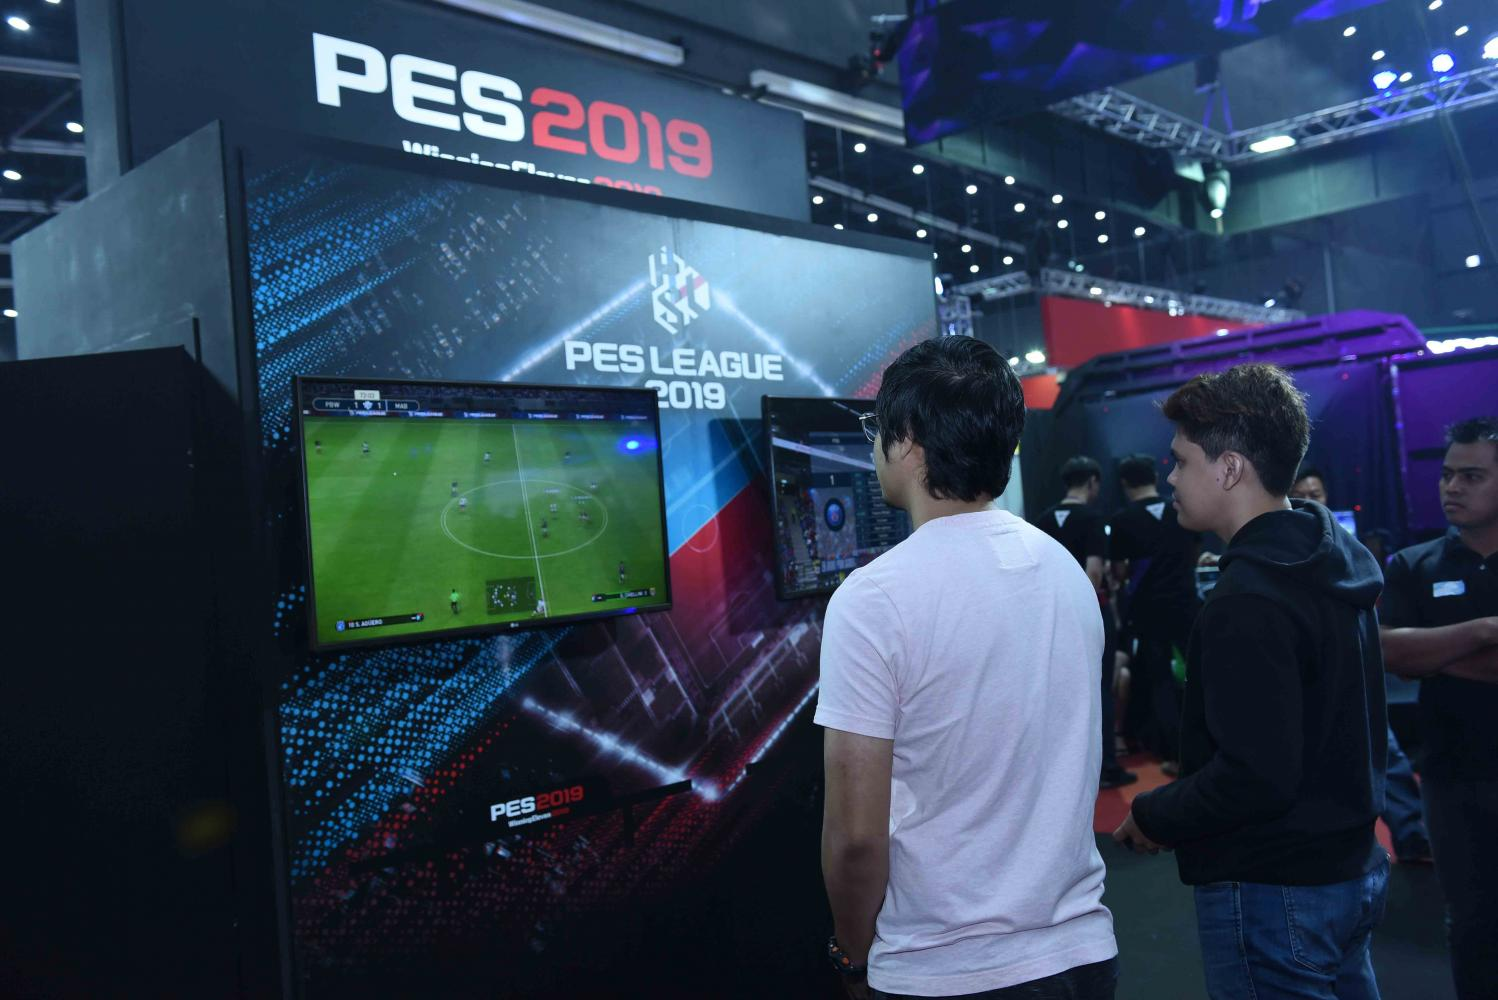 At the Thailand Game Expo, gamers play PES League, a football game known globally.